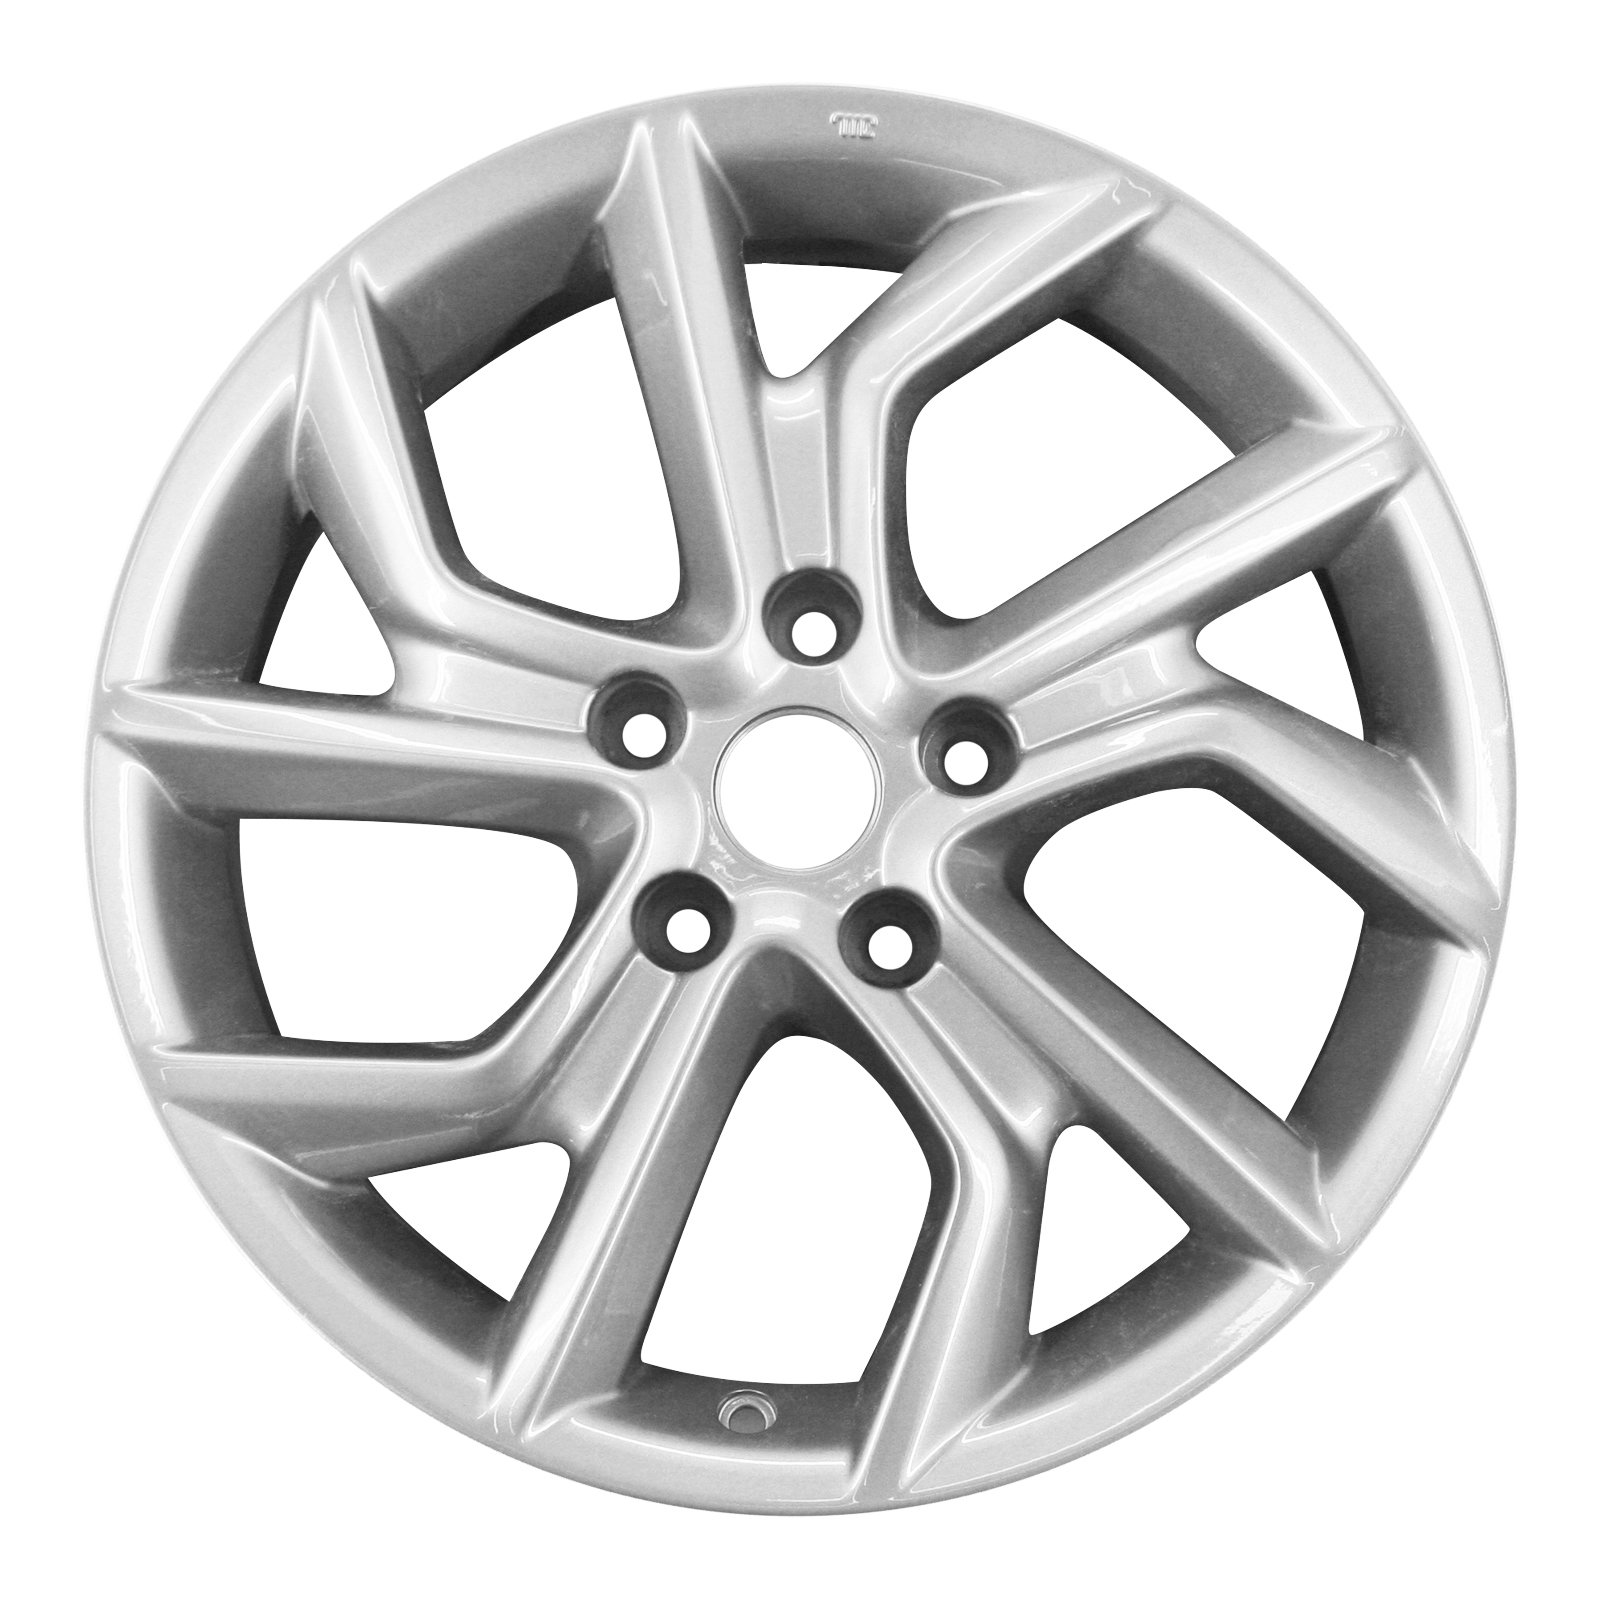 New 17'' Replacement Rim for Nissan Sentra 2013-2015 Wheel 62600